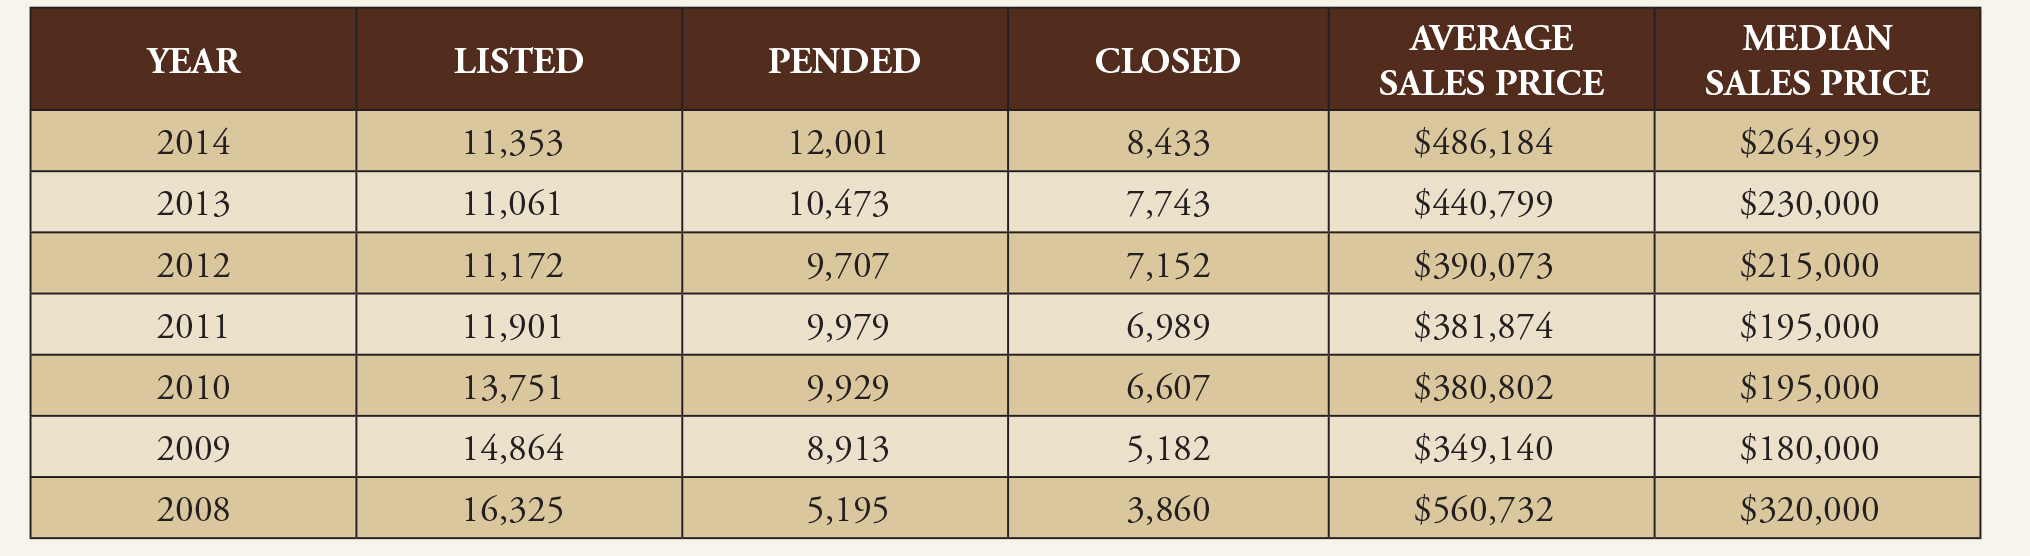 Market Report AUGUST 2014.indd